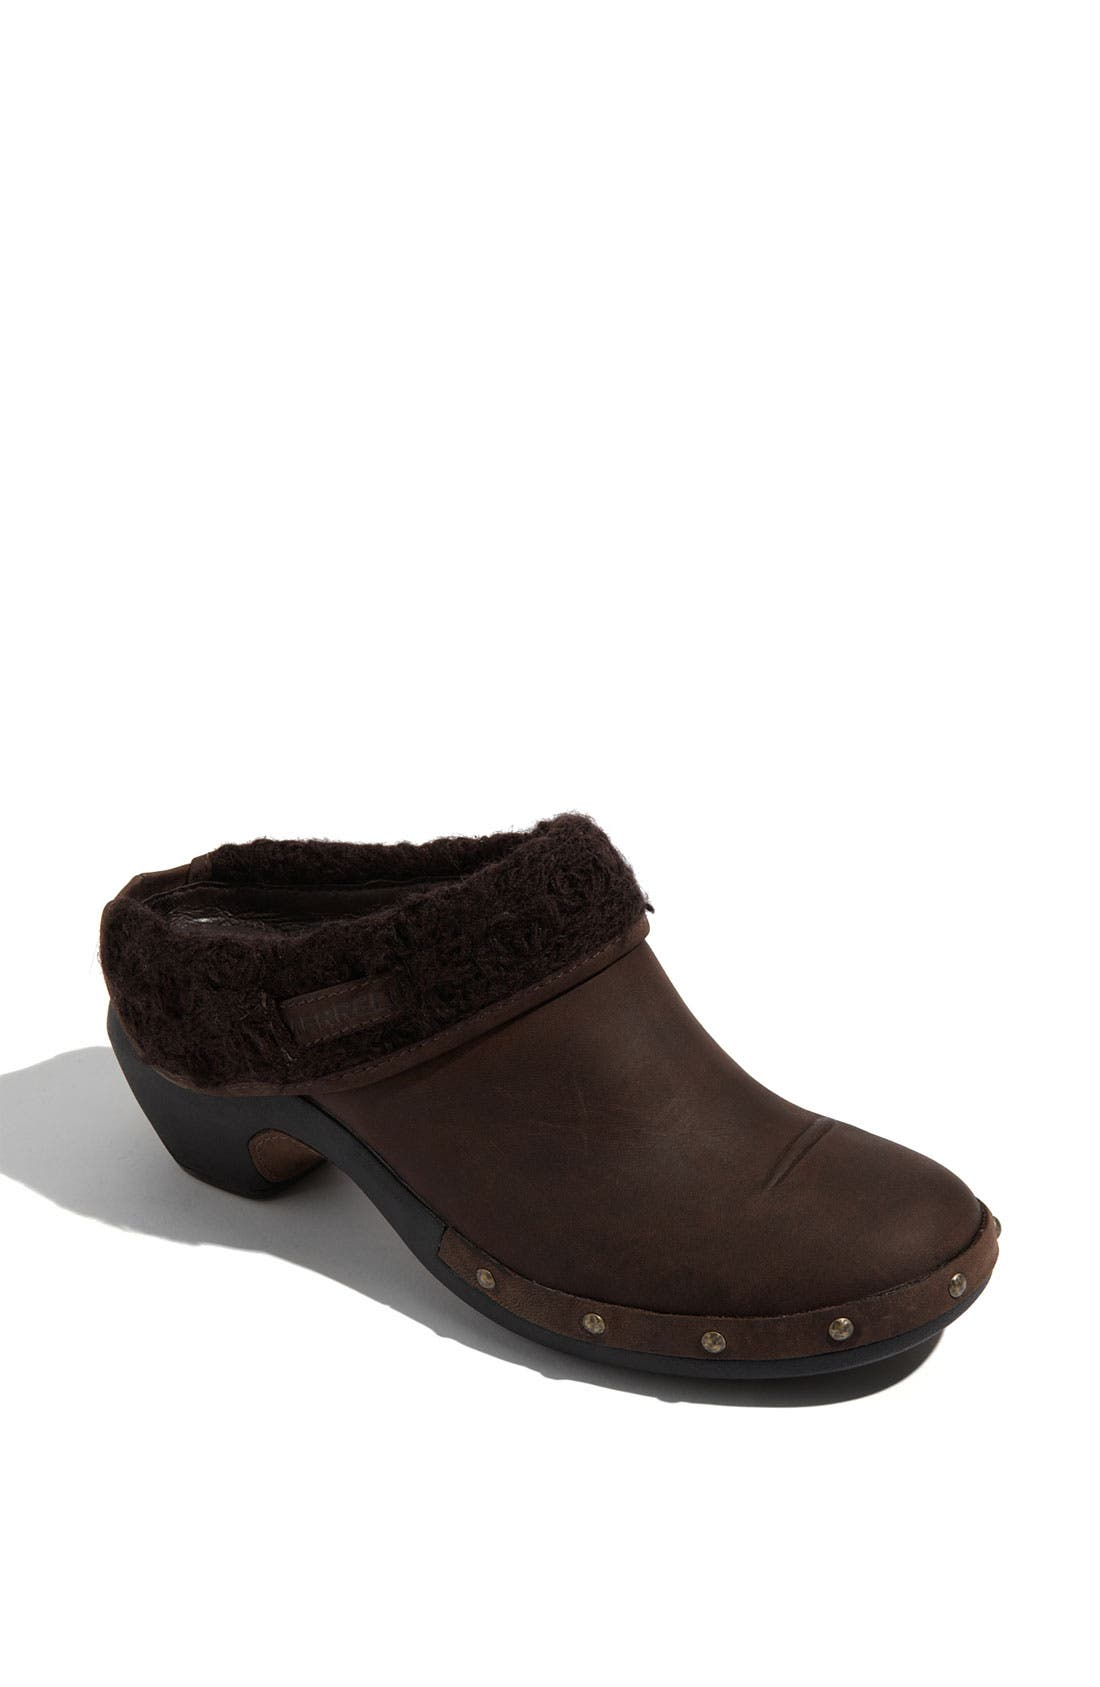 Alternate Image 1 Selected - Merrell Knit Trim Clog